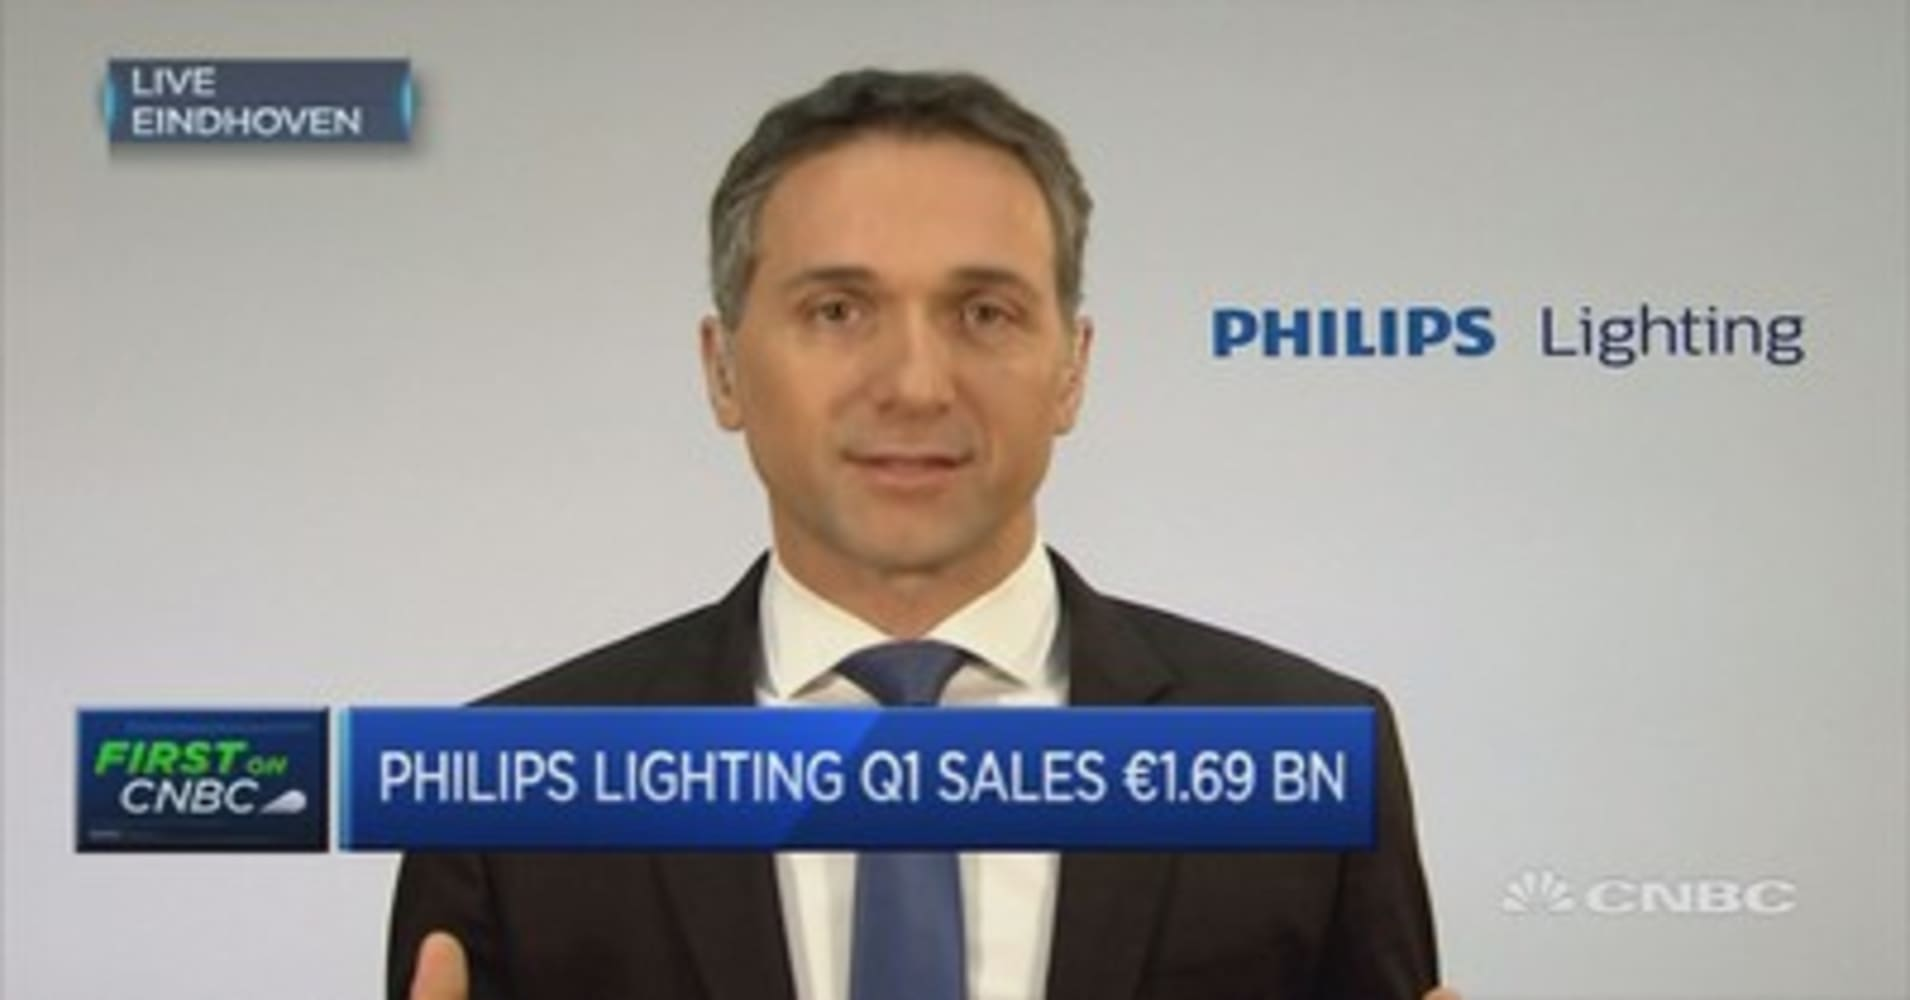 Philips lighting q1 earnings beat on small sales decline first quarter sales a substantial improvement to previously philips lighting ceo buycottarizona